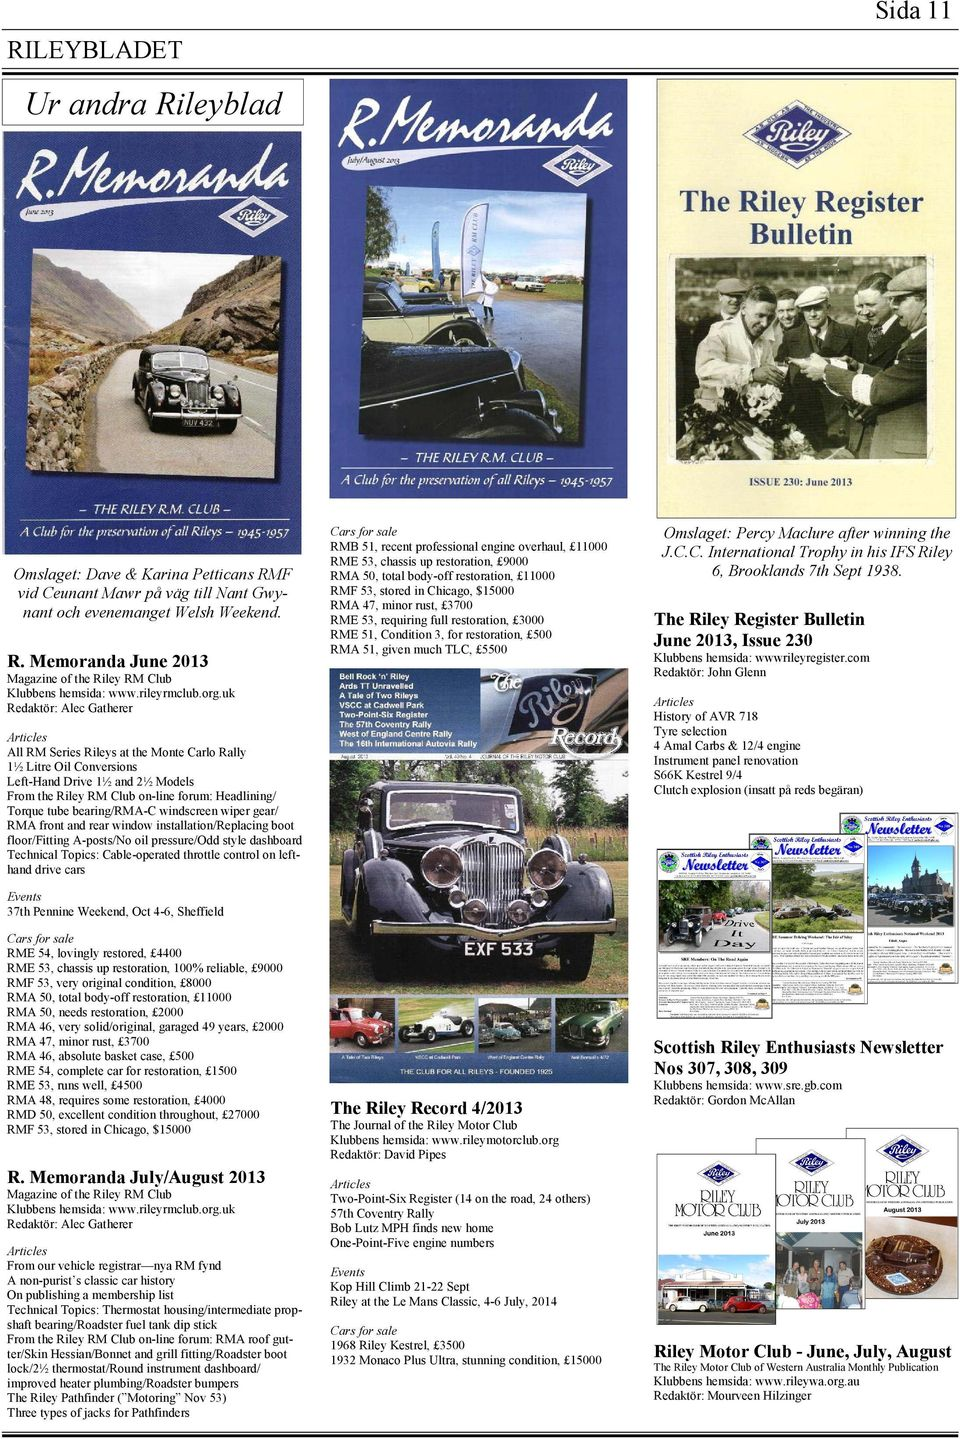 uk Redaktör: Alec Gatherer Articles All RM Series Rileys at the Monte Carlo Rally 1½ Litre Oil Conversions Left-Hand Drive 1½ and 2½ Models From the Riley RM Club on-line forum: Headlining/ Torque